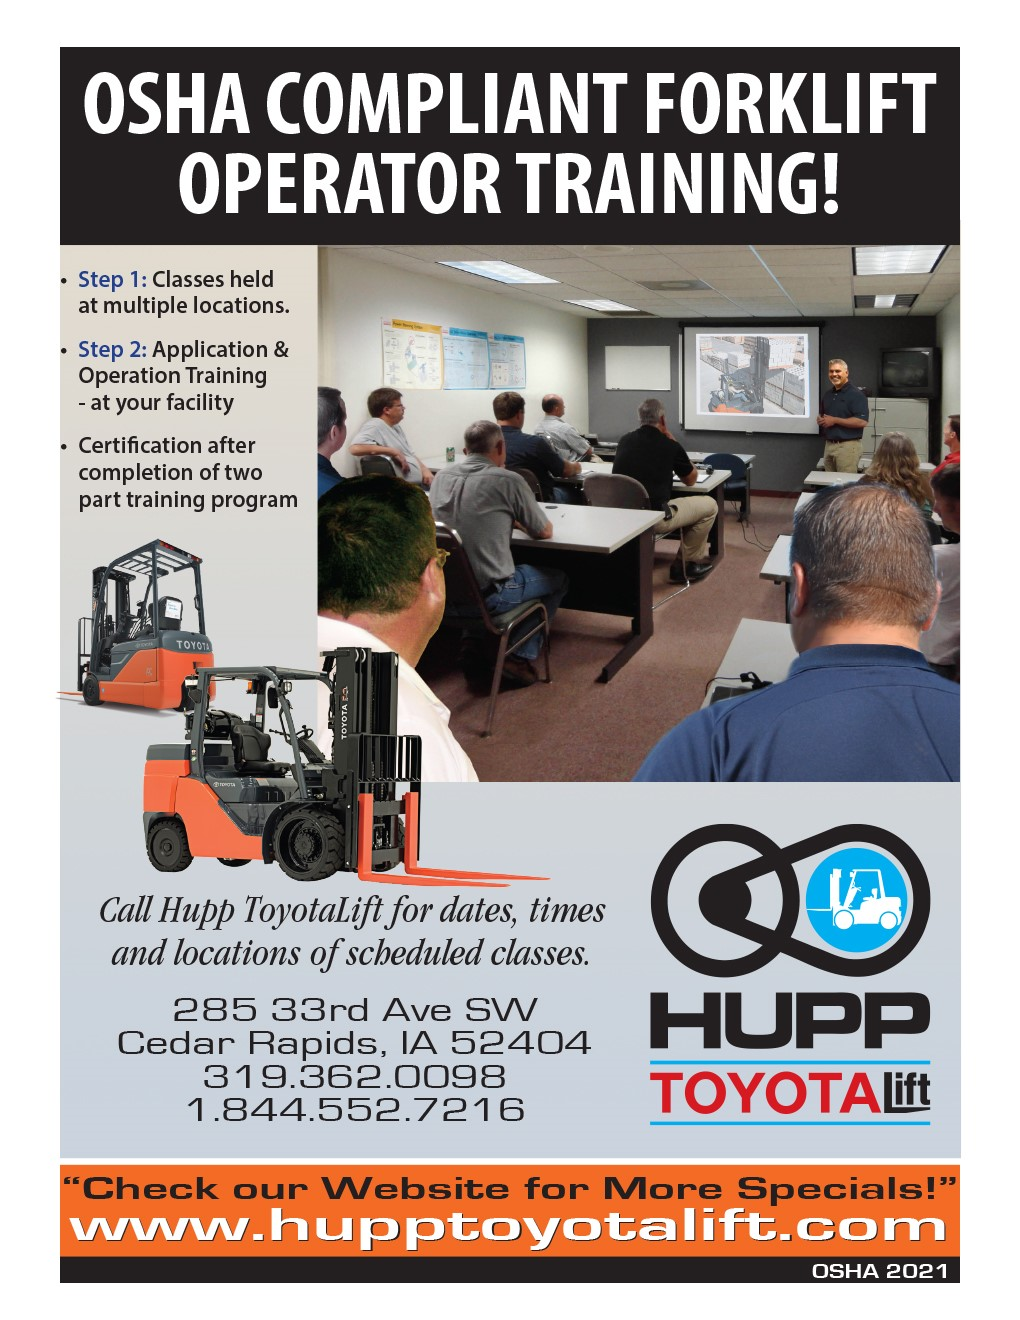 Hupp-Toyota-Osha-Training